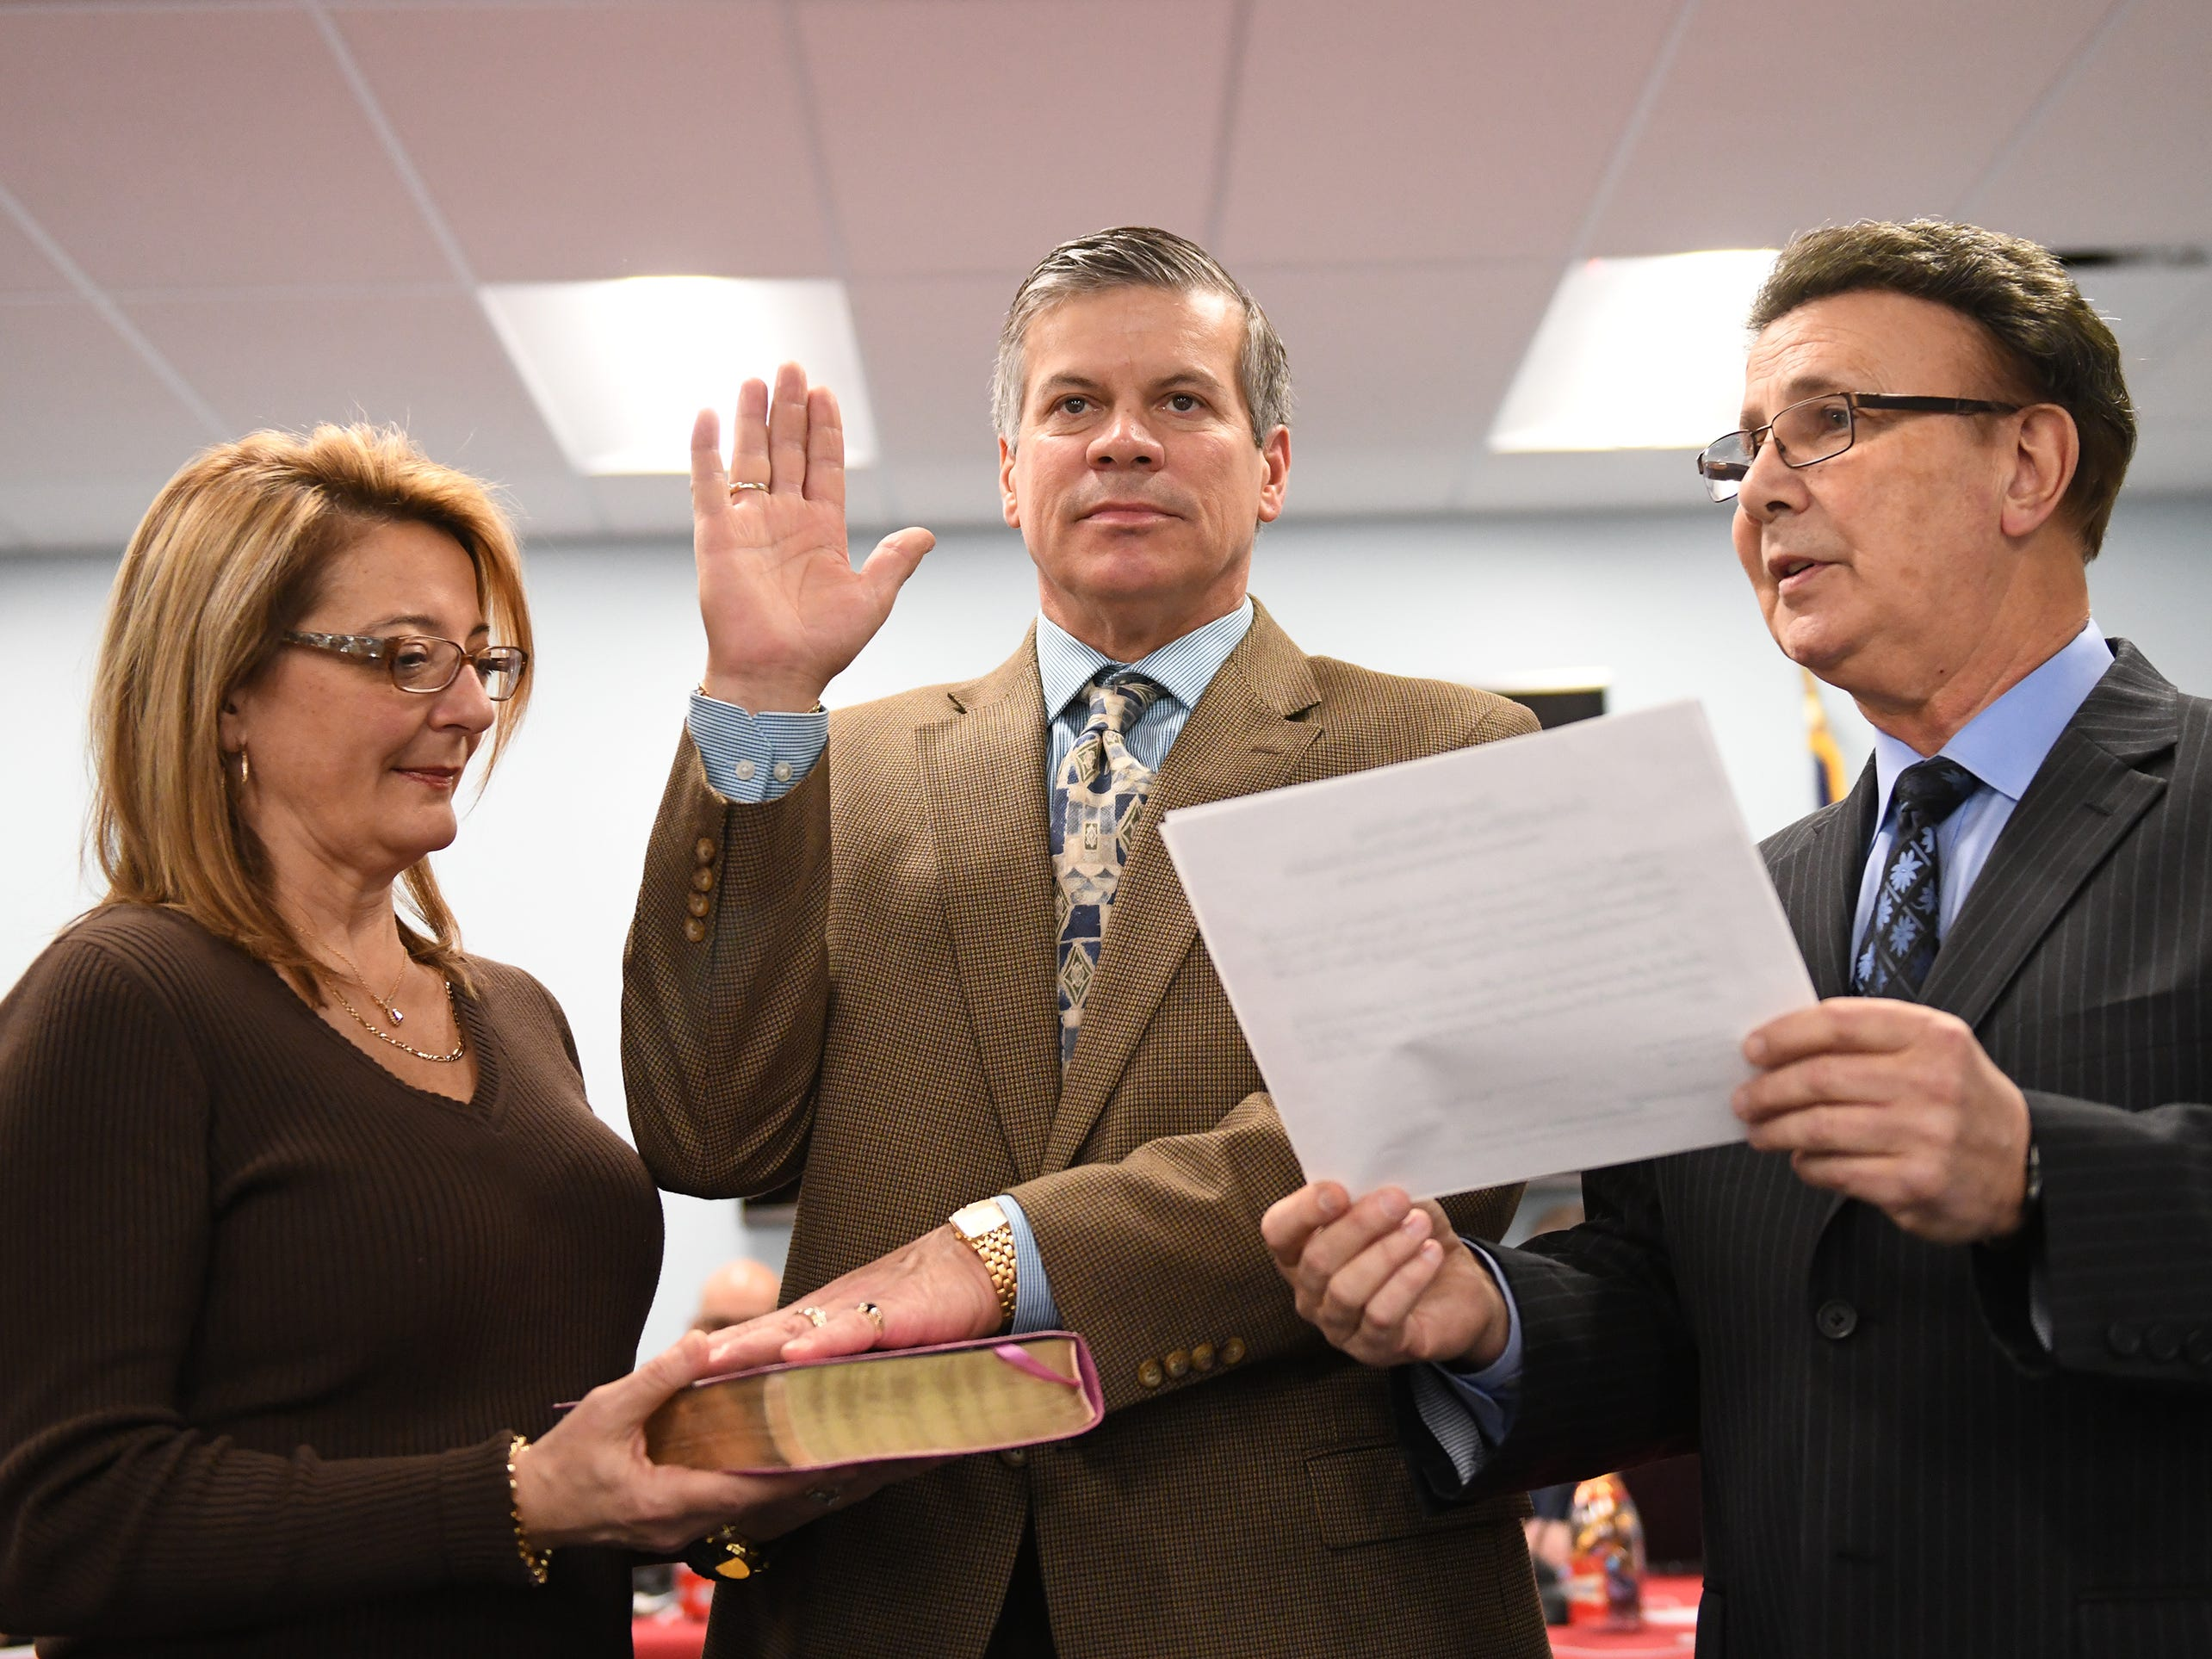 Christopher E. Jennings takes the oath of office while his wife Darla holds the bible during a Vineland Board of Education reorganization meeting on Wednesday, January 2, 2019.